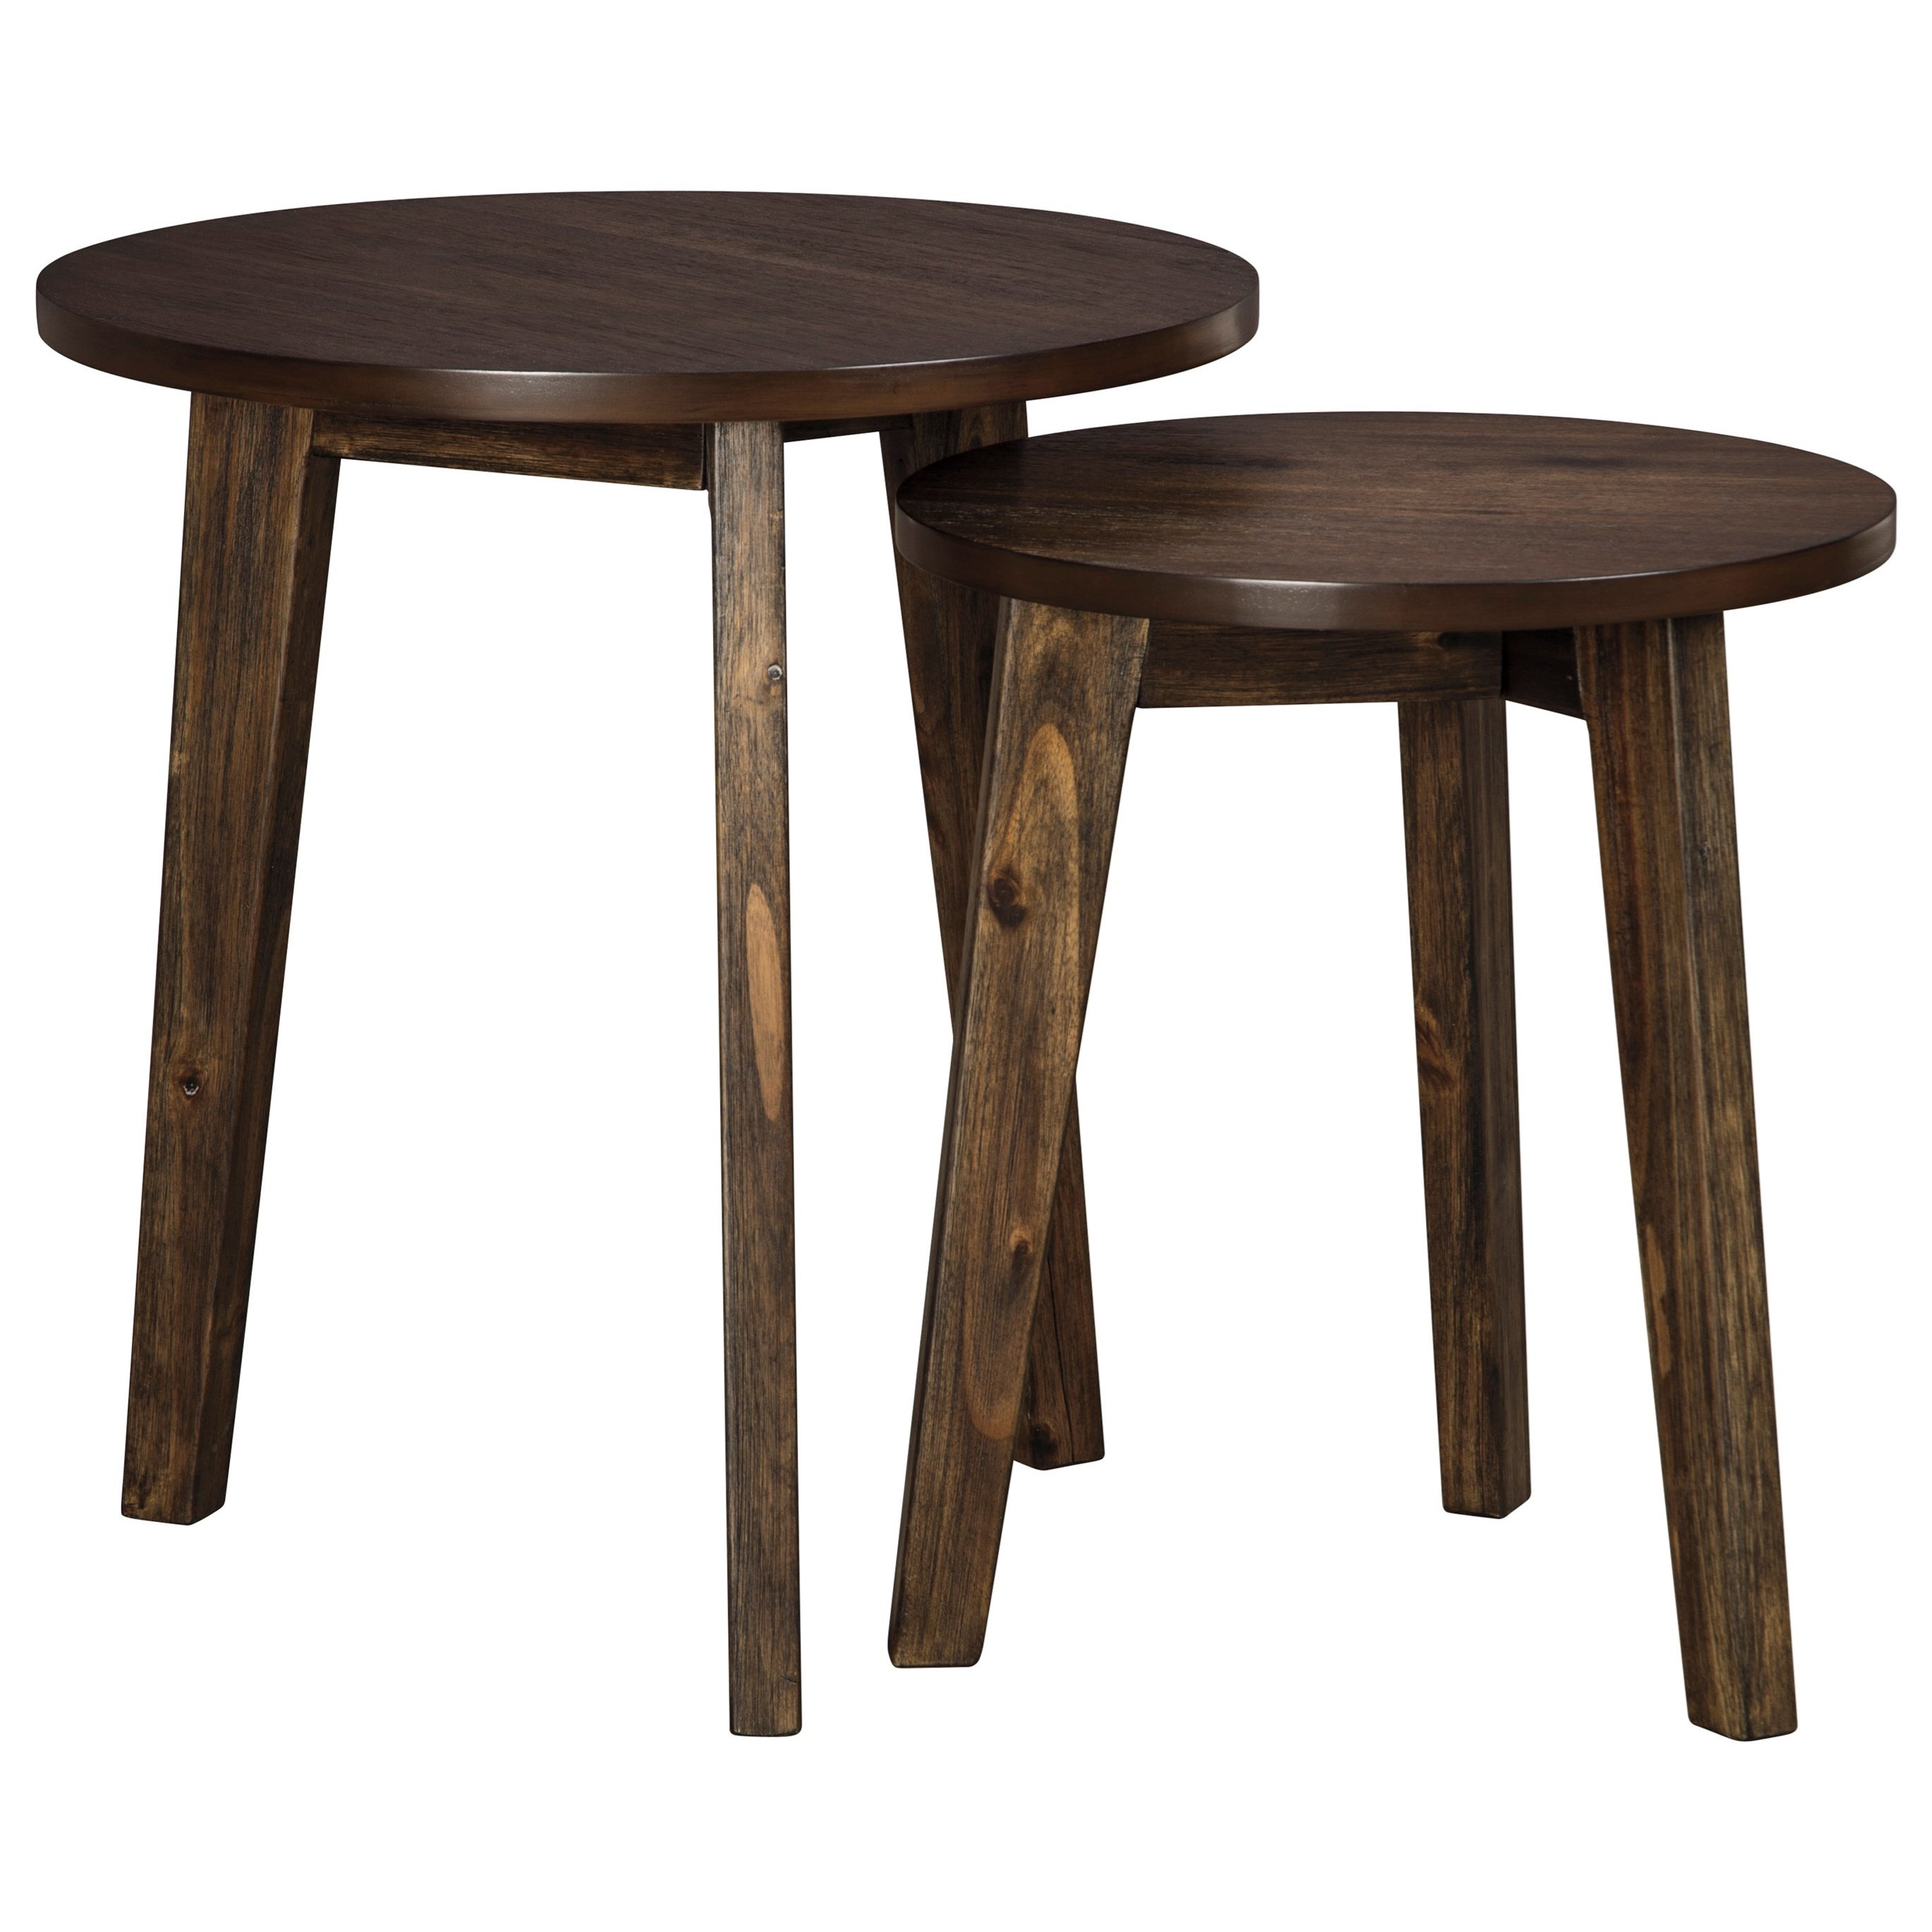 Clydmont 2-Piece Accent Table Set by Signature Design by Ashley at Suburban Furniture